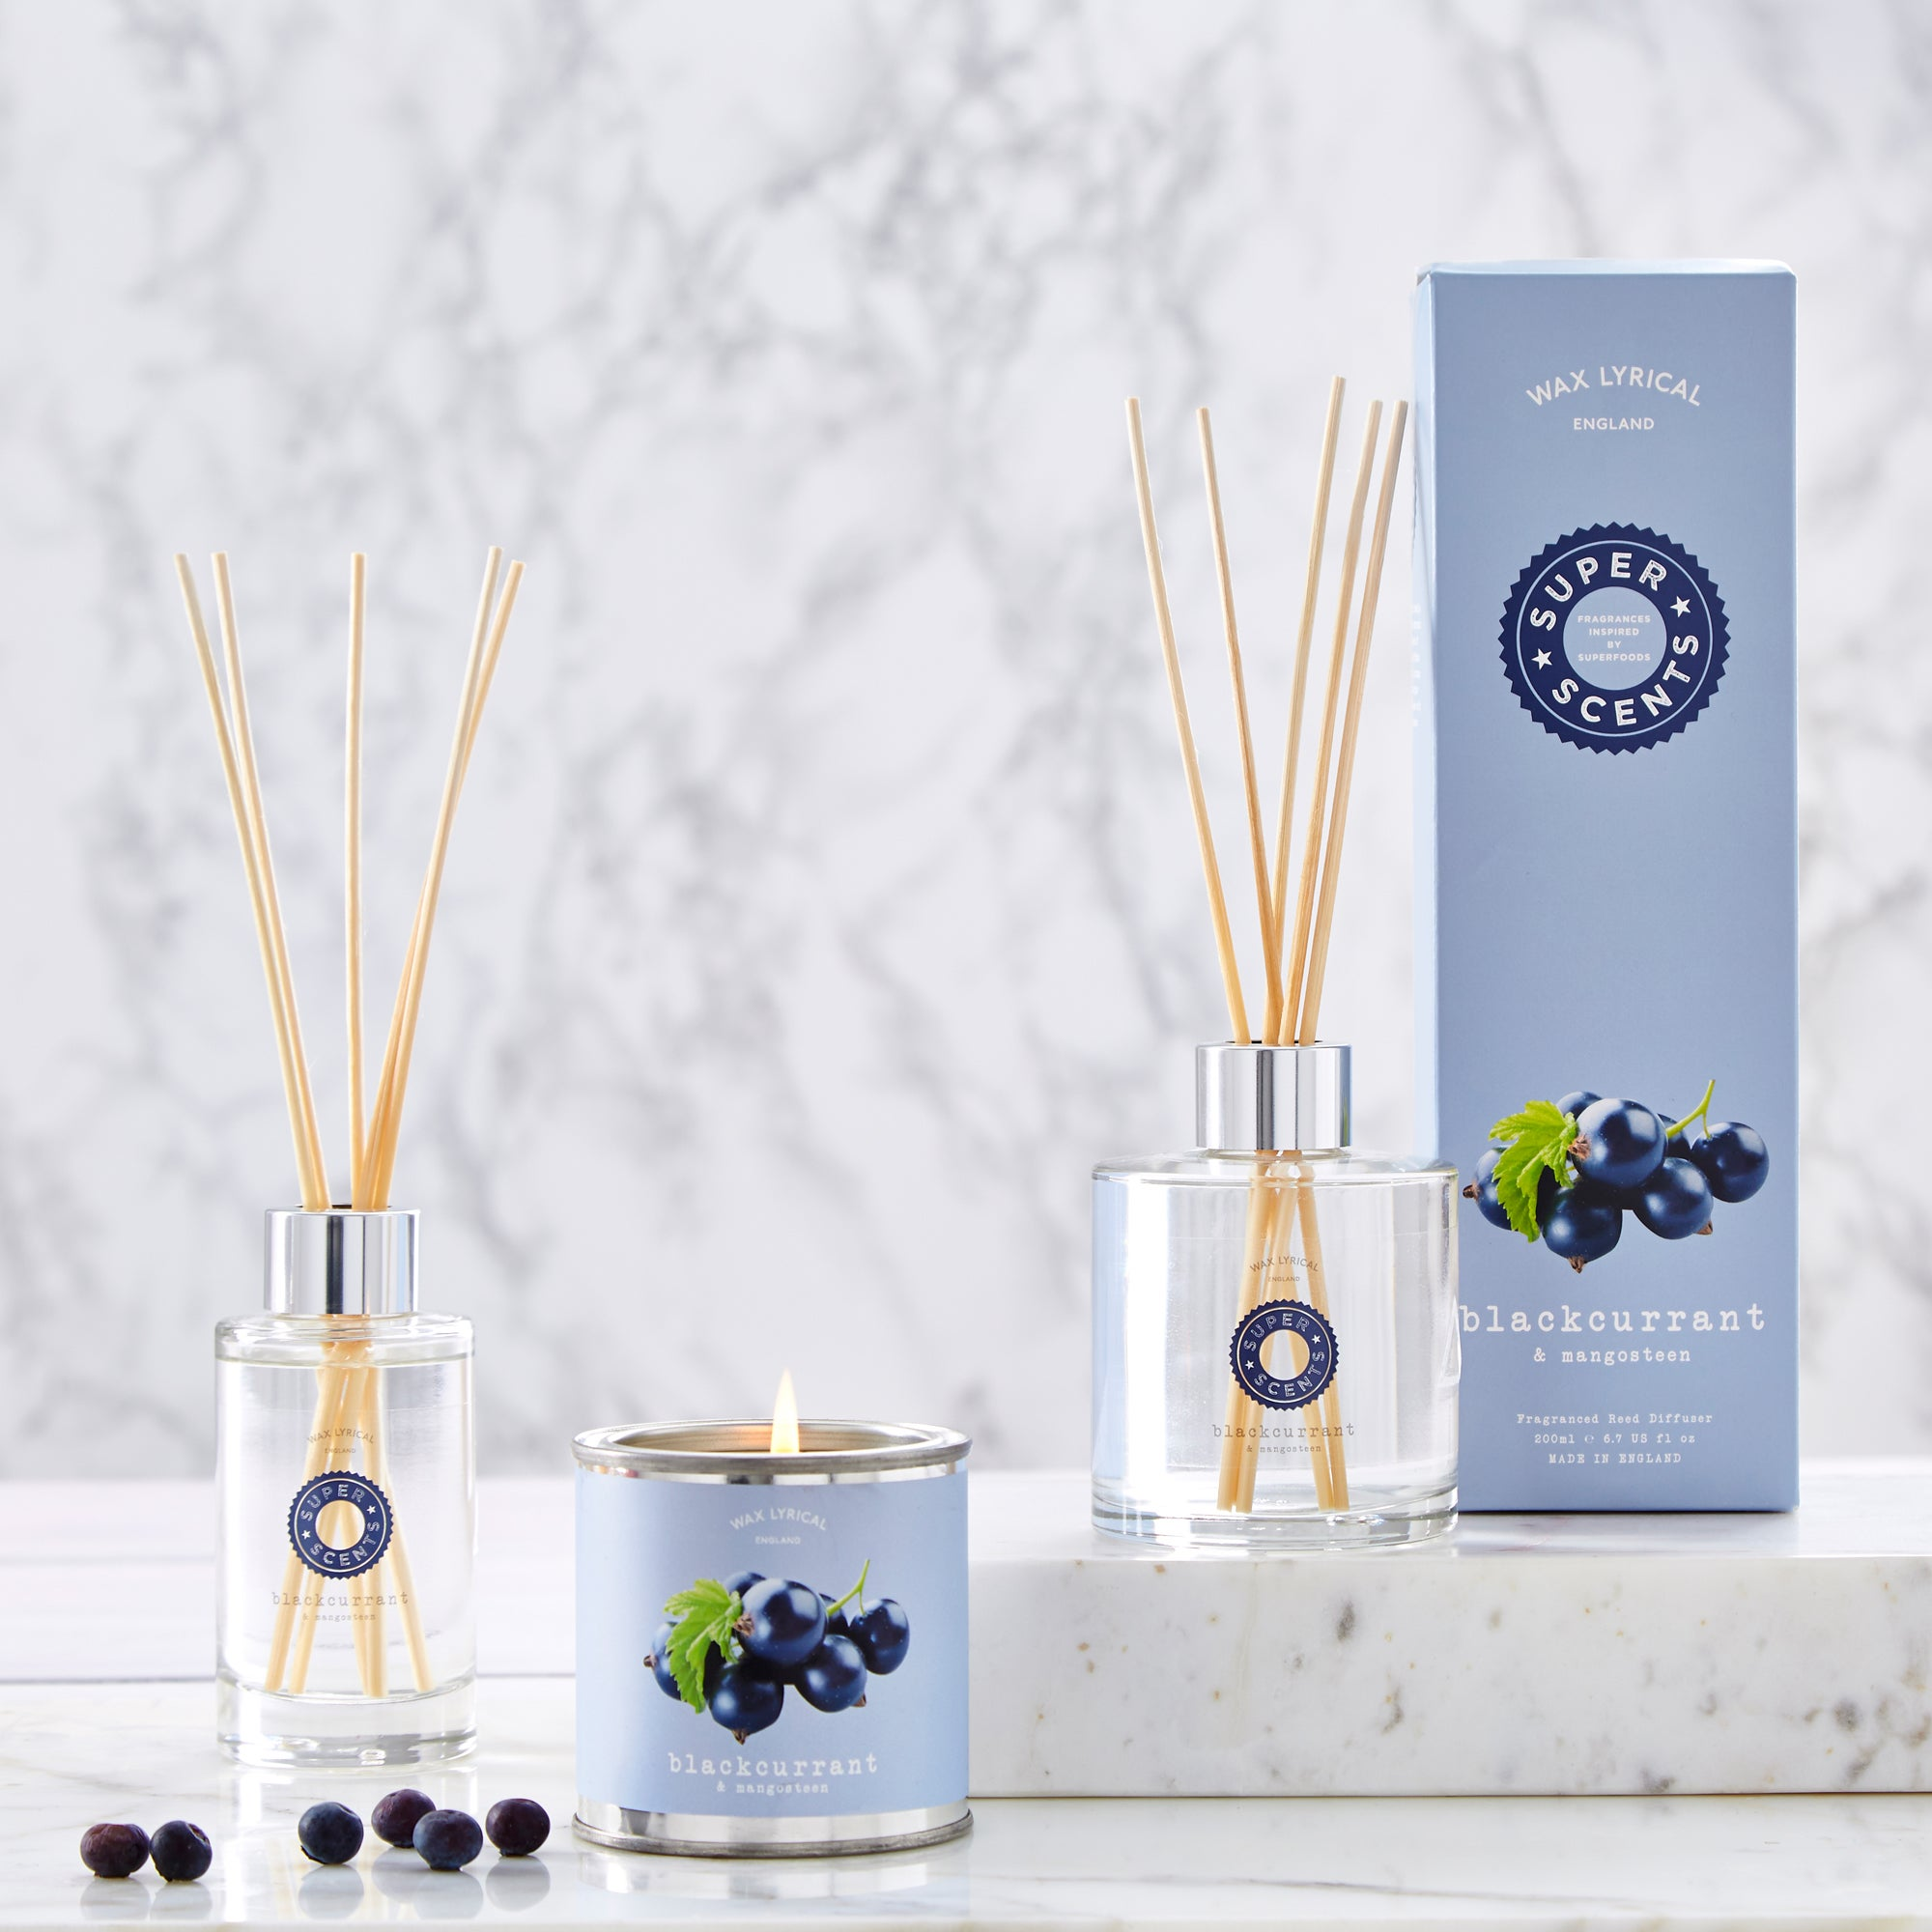 Wax Lyrical Superscents Blackcurrent and Mangosteen Fragrance Collection